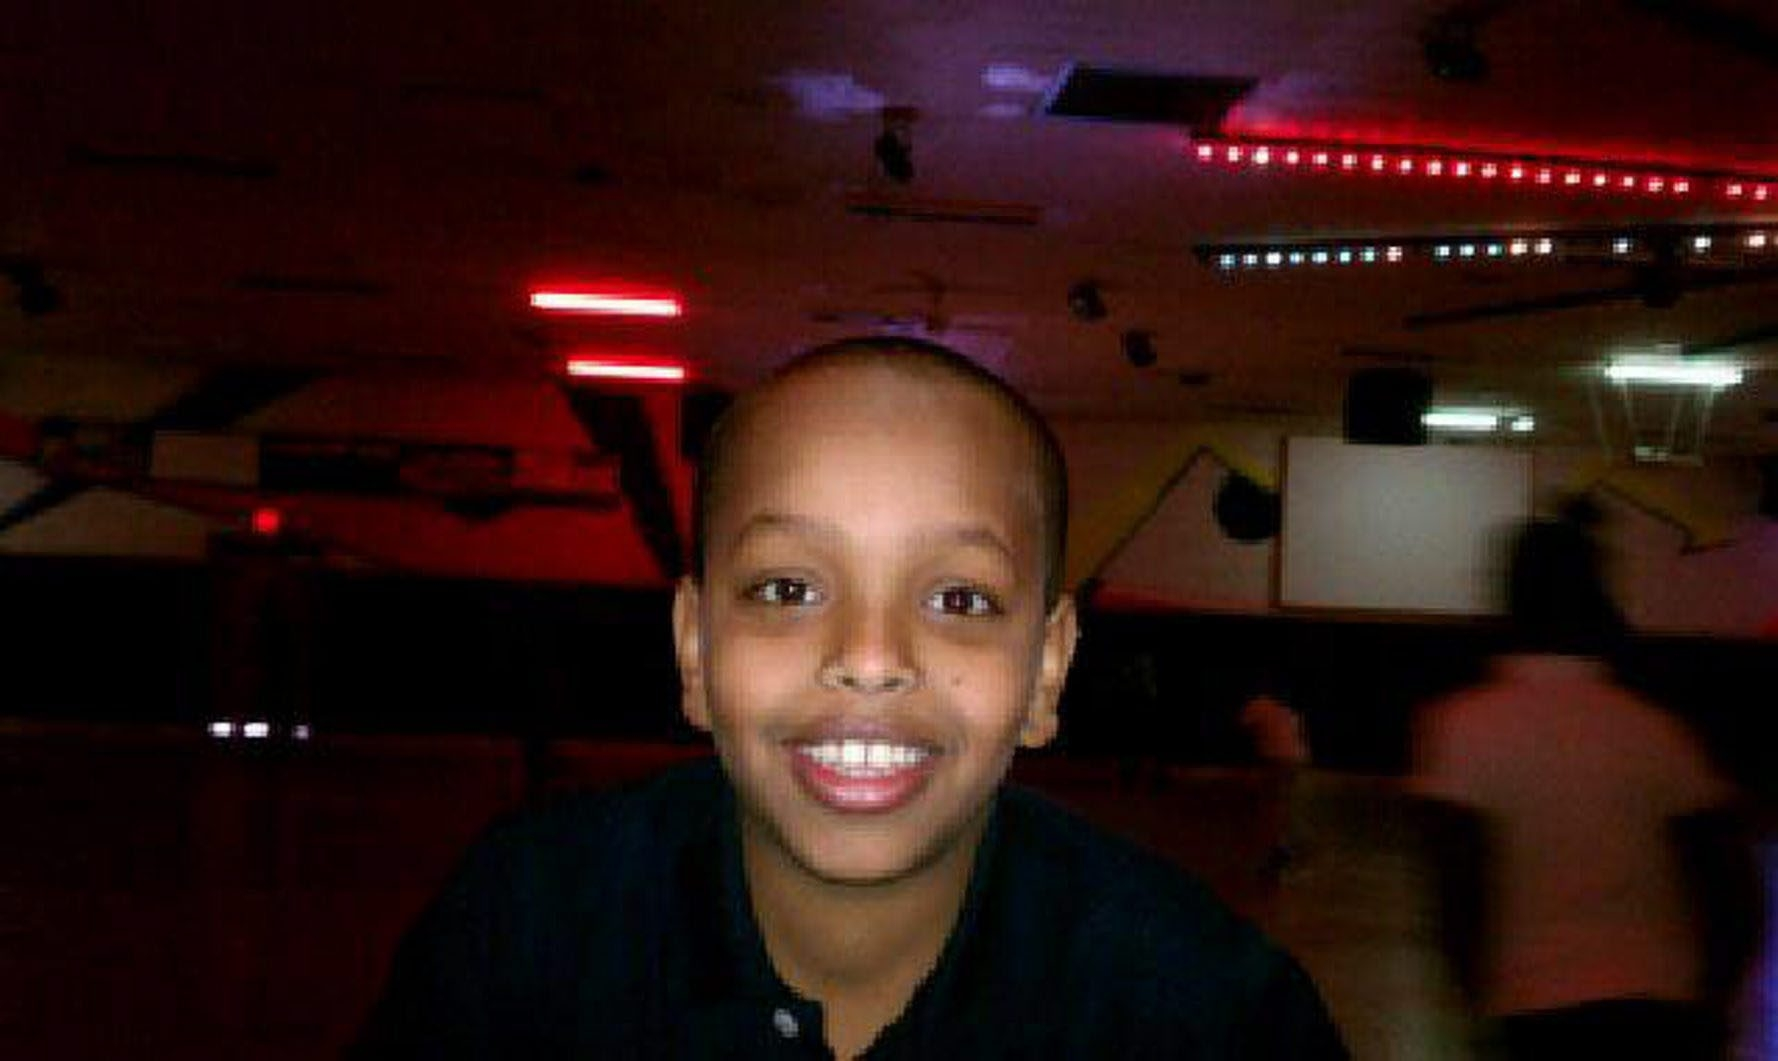 Ten-year-old Abdifatah Mohamud was beaten to death by his stepfather last year.